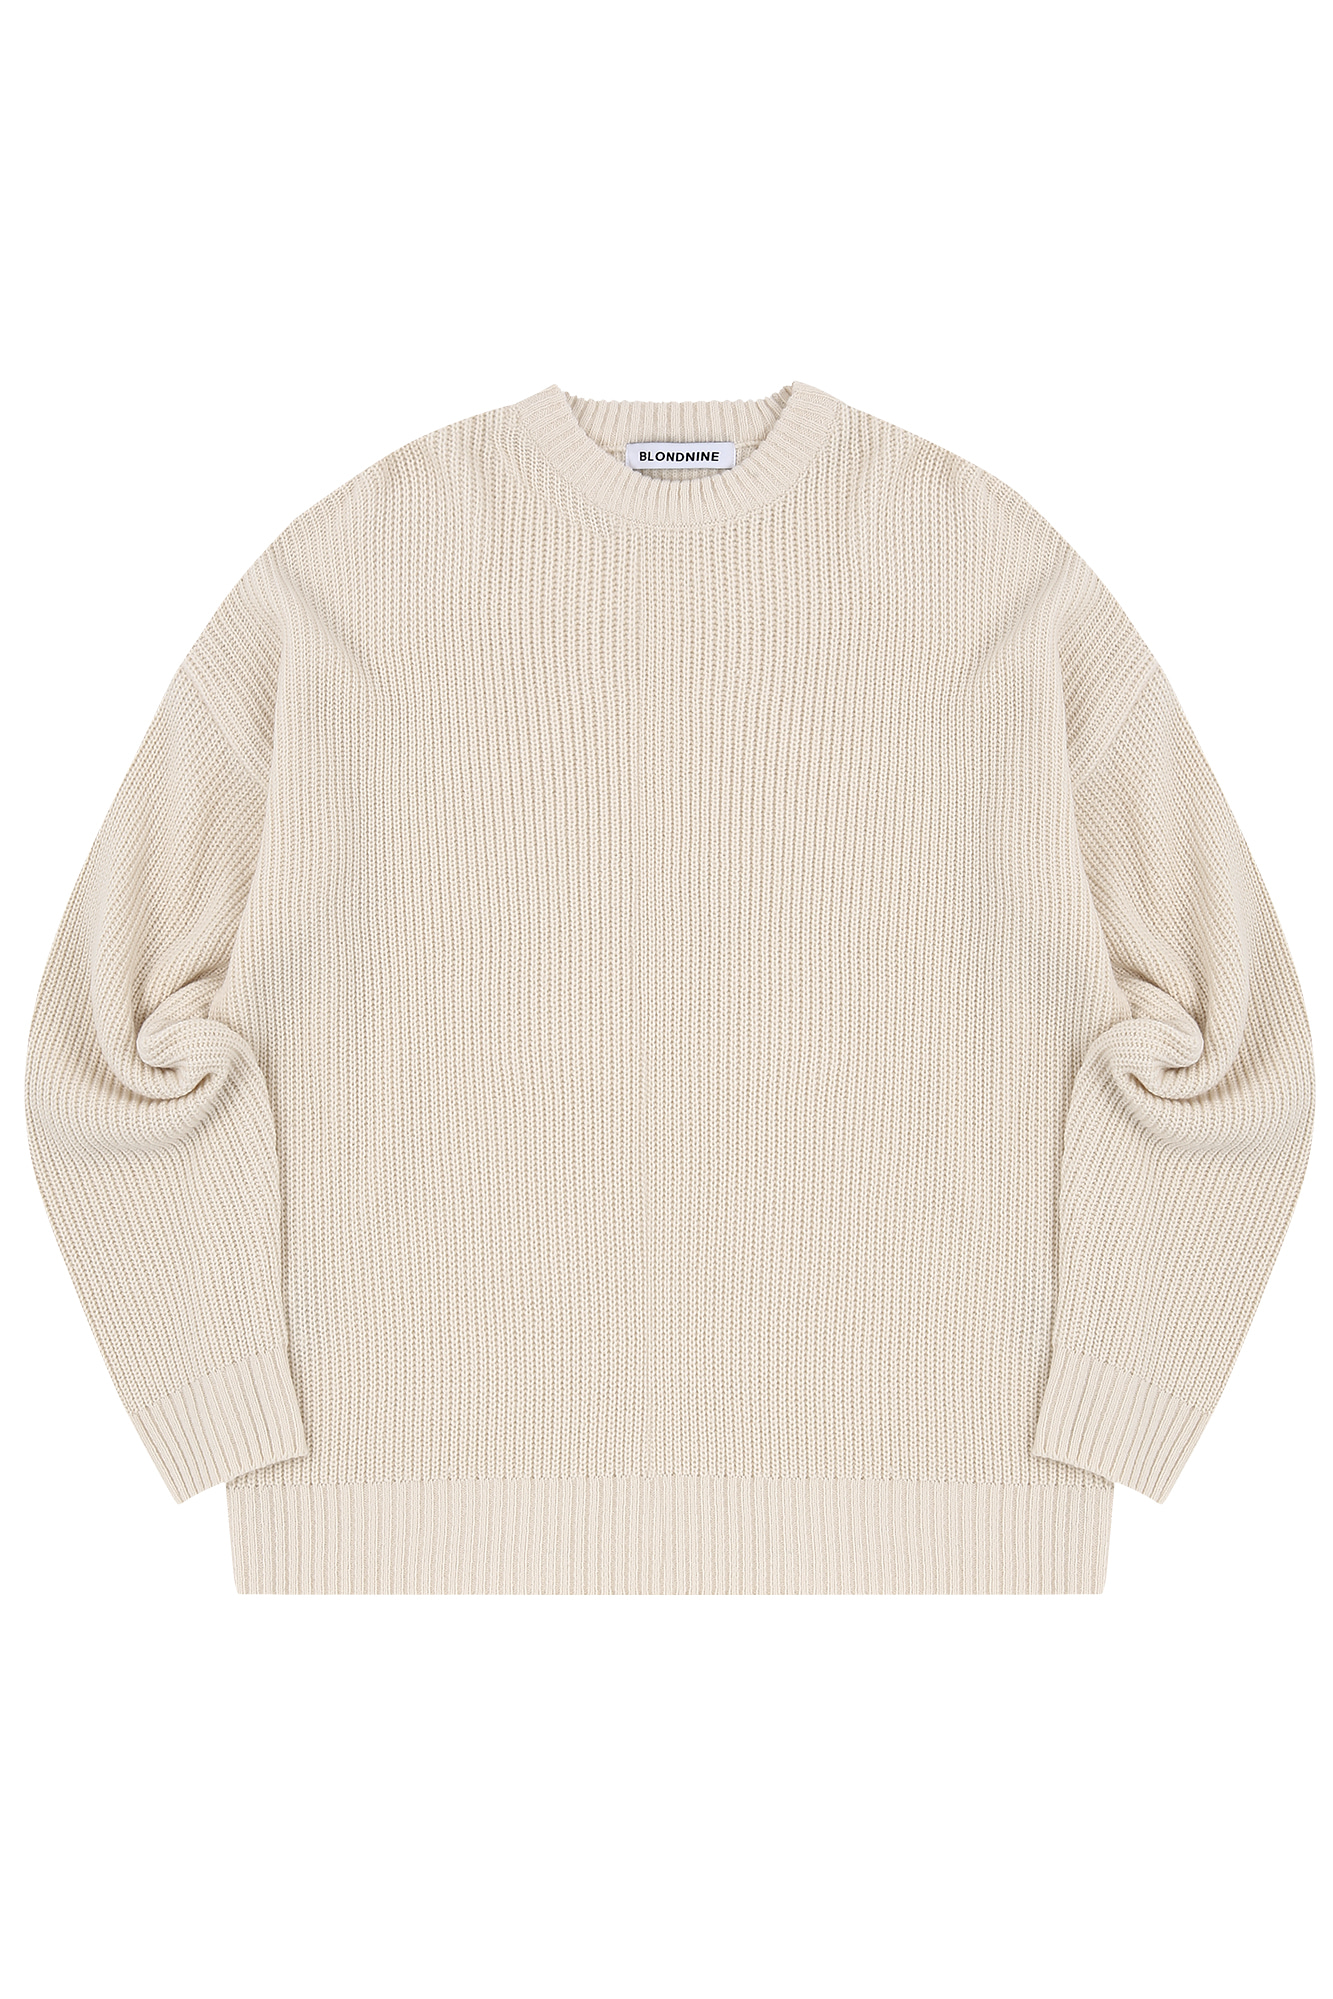 CREW NECK RIB KNIT SWEATER_IVORY